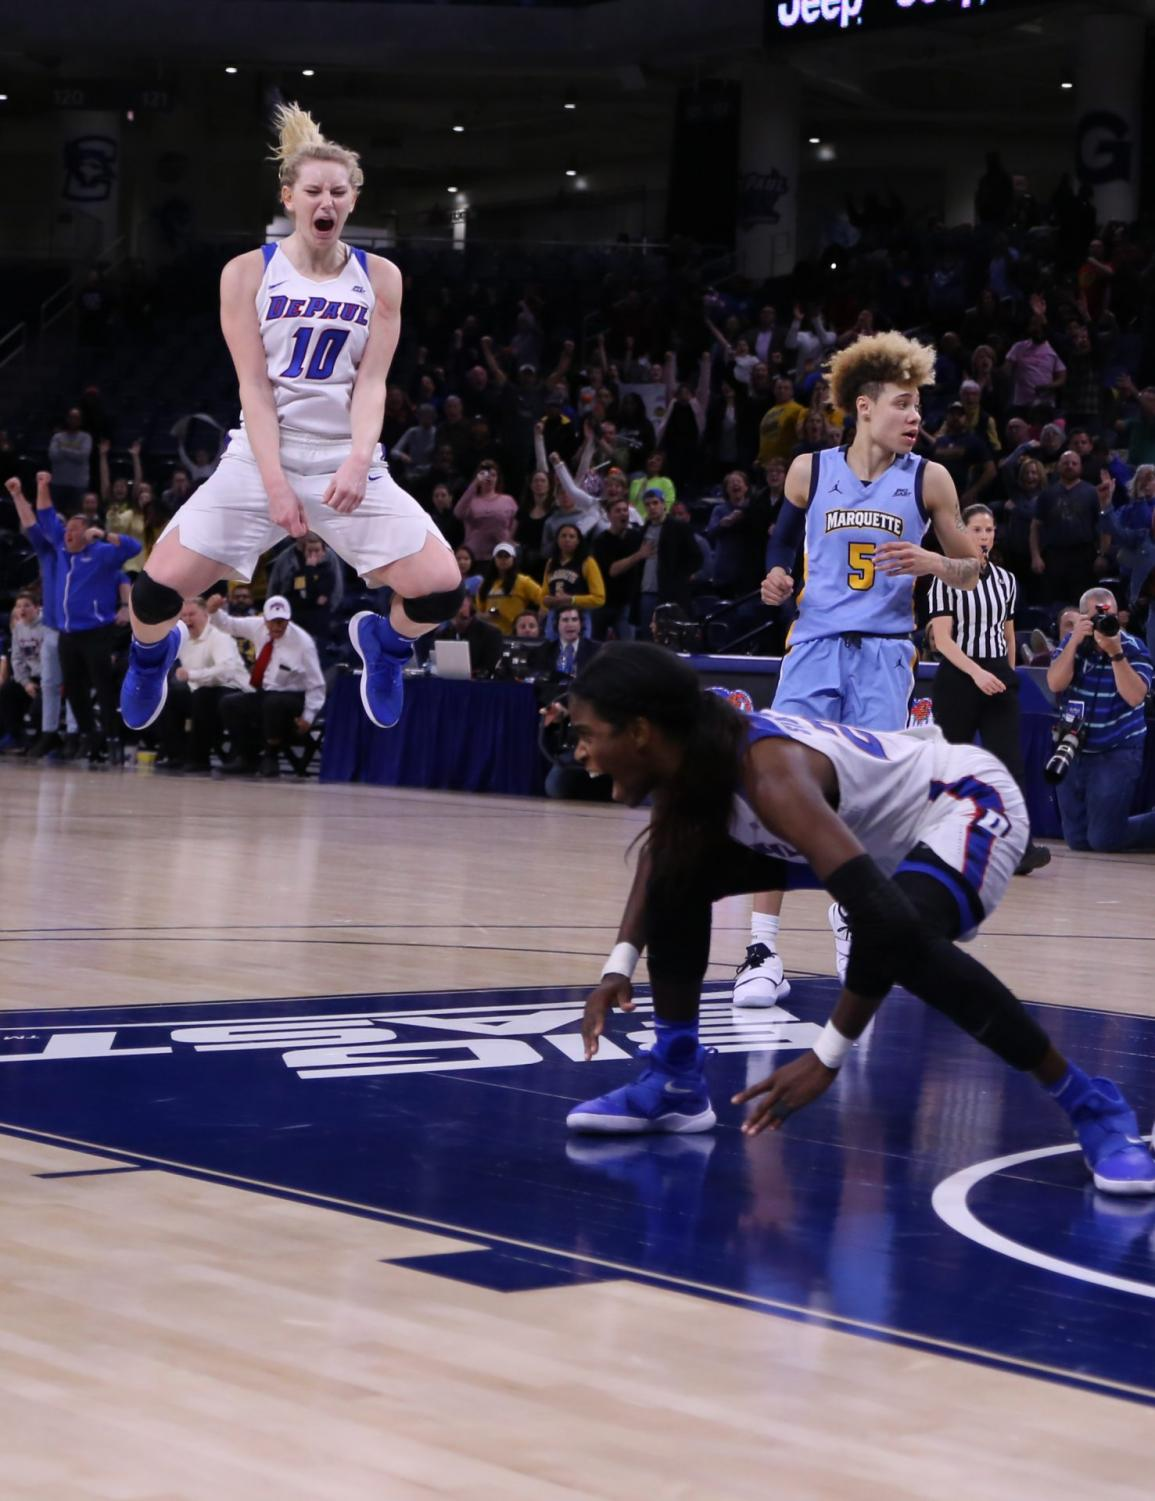 Lexi Held and Chante Stonewall celebrate after Stonewall hit a game-winning shot in the 2019 Big East championship game on March 12 at Wintrust Arena.